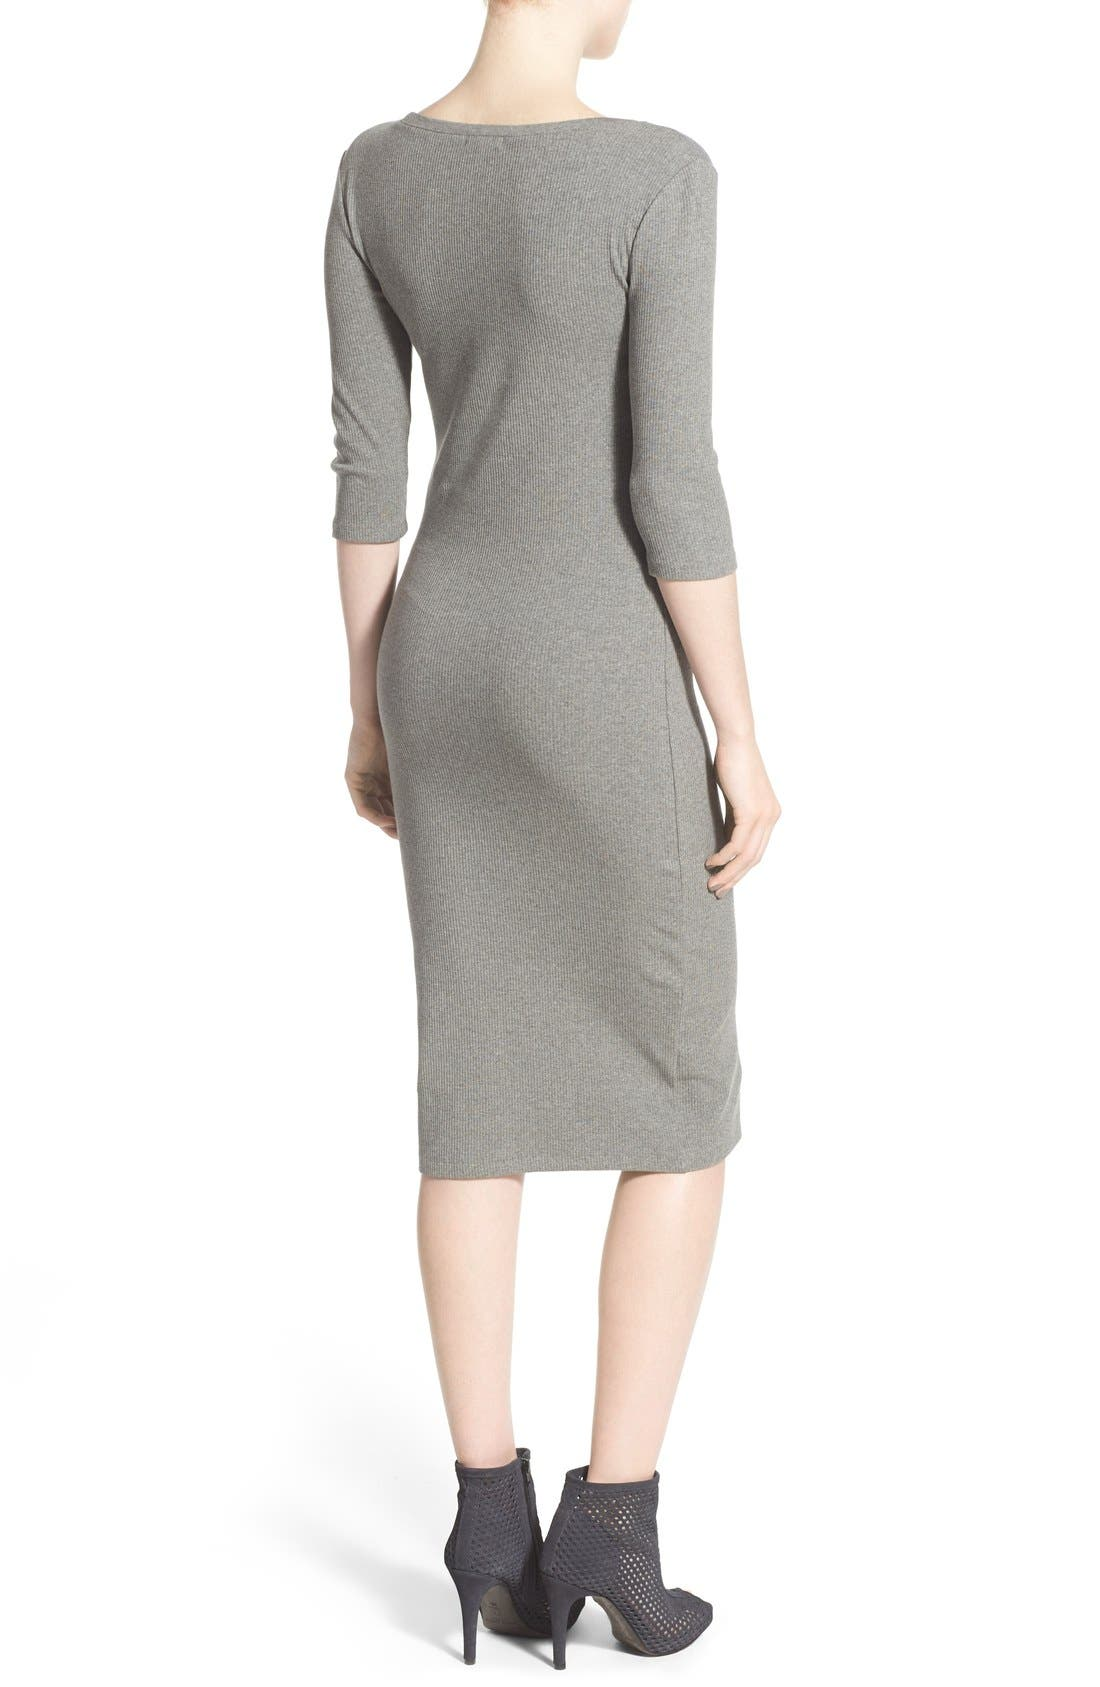 Scoop Neck T-Shirt Dress,                             Alternate thumbnail 2, color,                             Grey Cloudy Heather